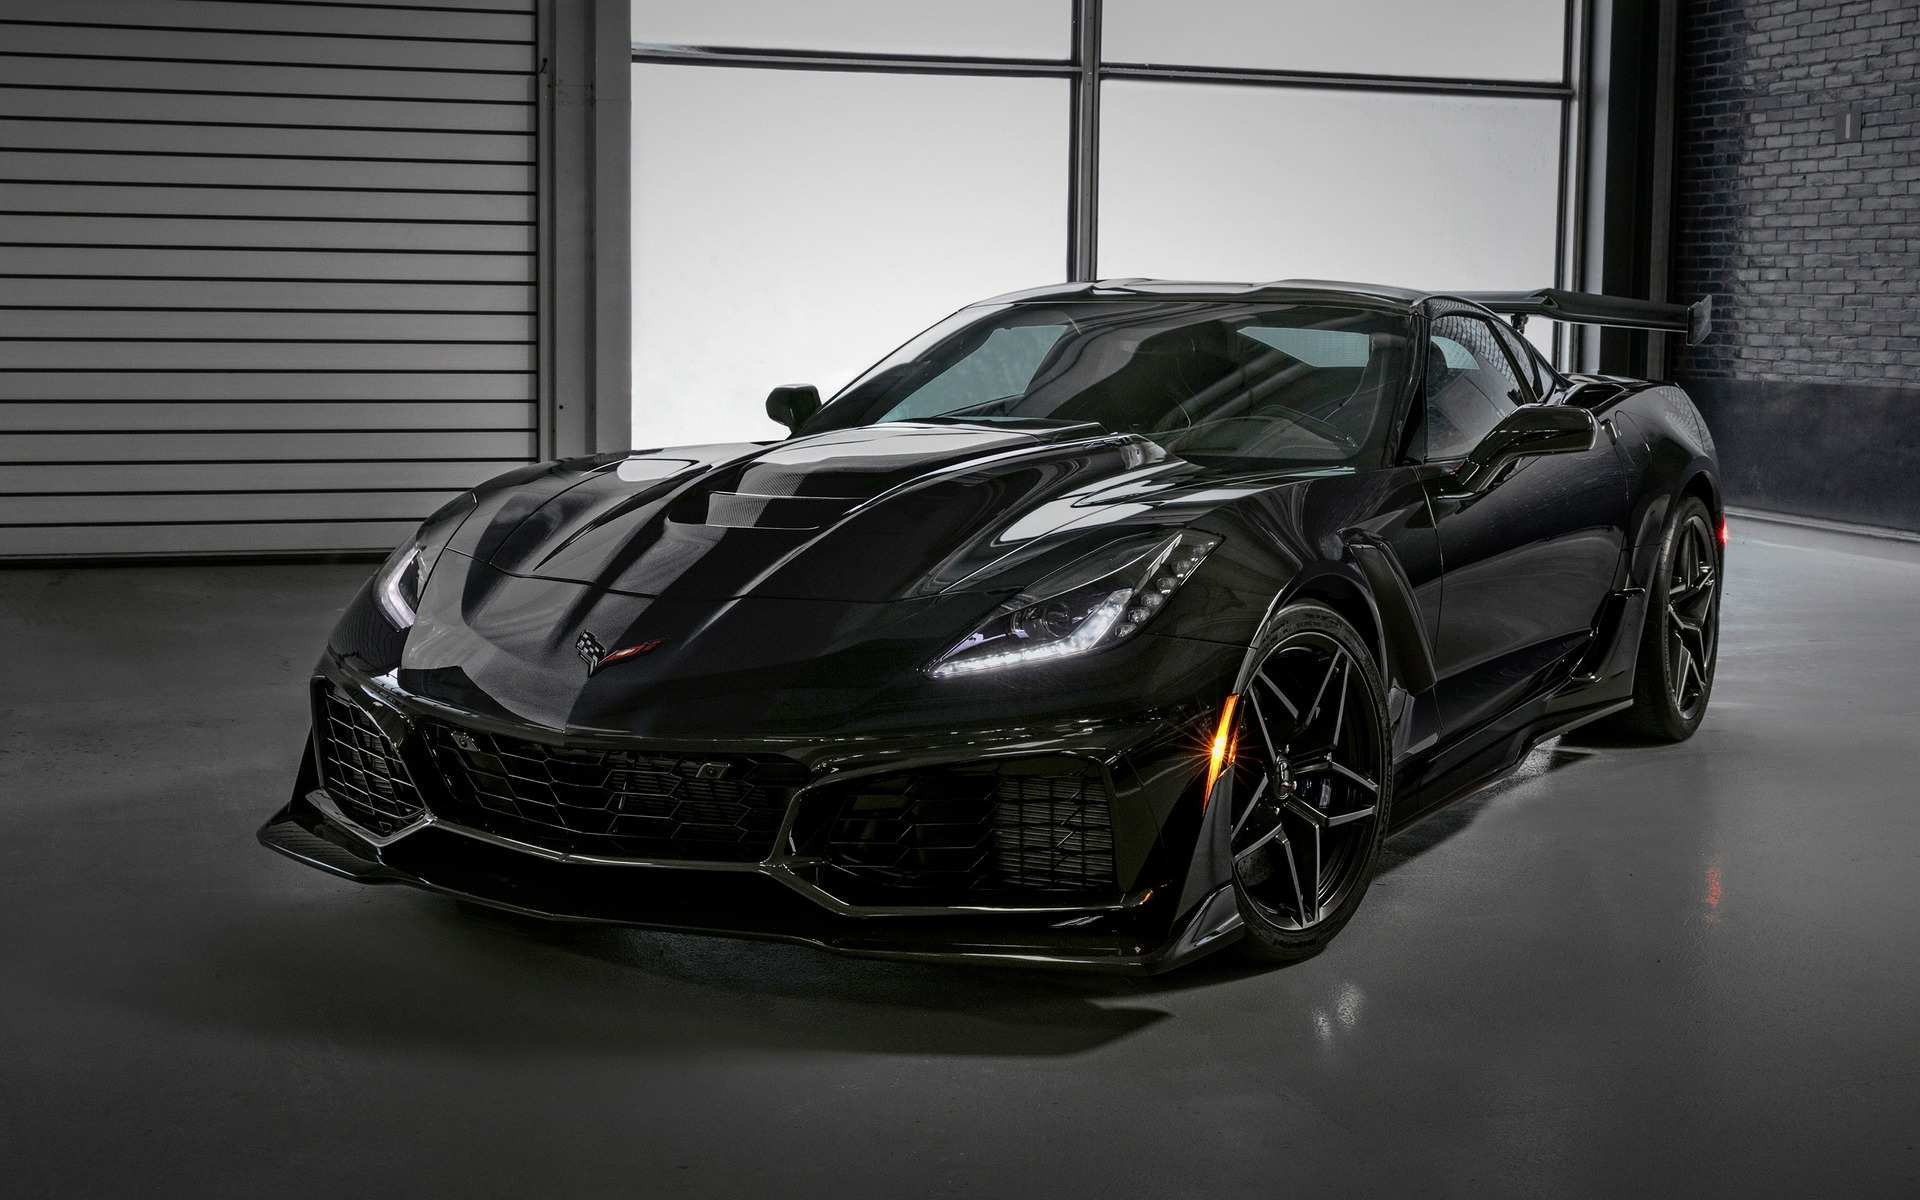 89 All New New Chevrolet Corvette Zr1 2019 Spy Shoot Photos for New Chevrolet Corvette Zr1 2019 Spy Shoot